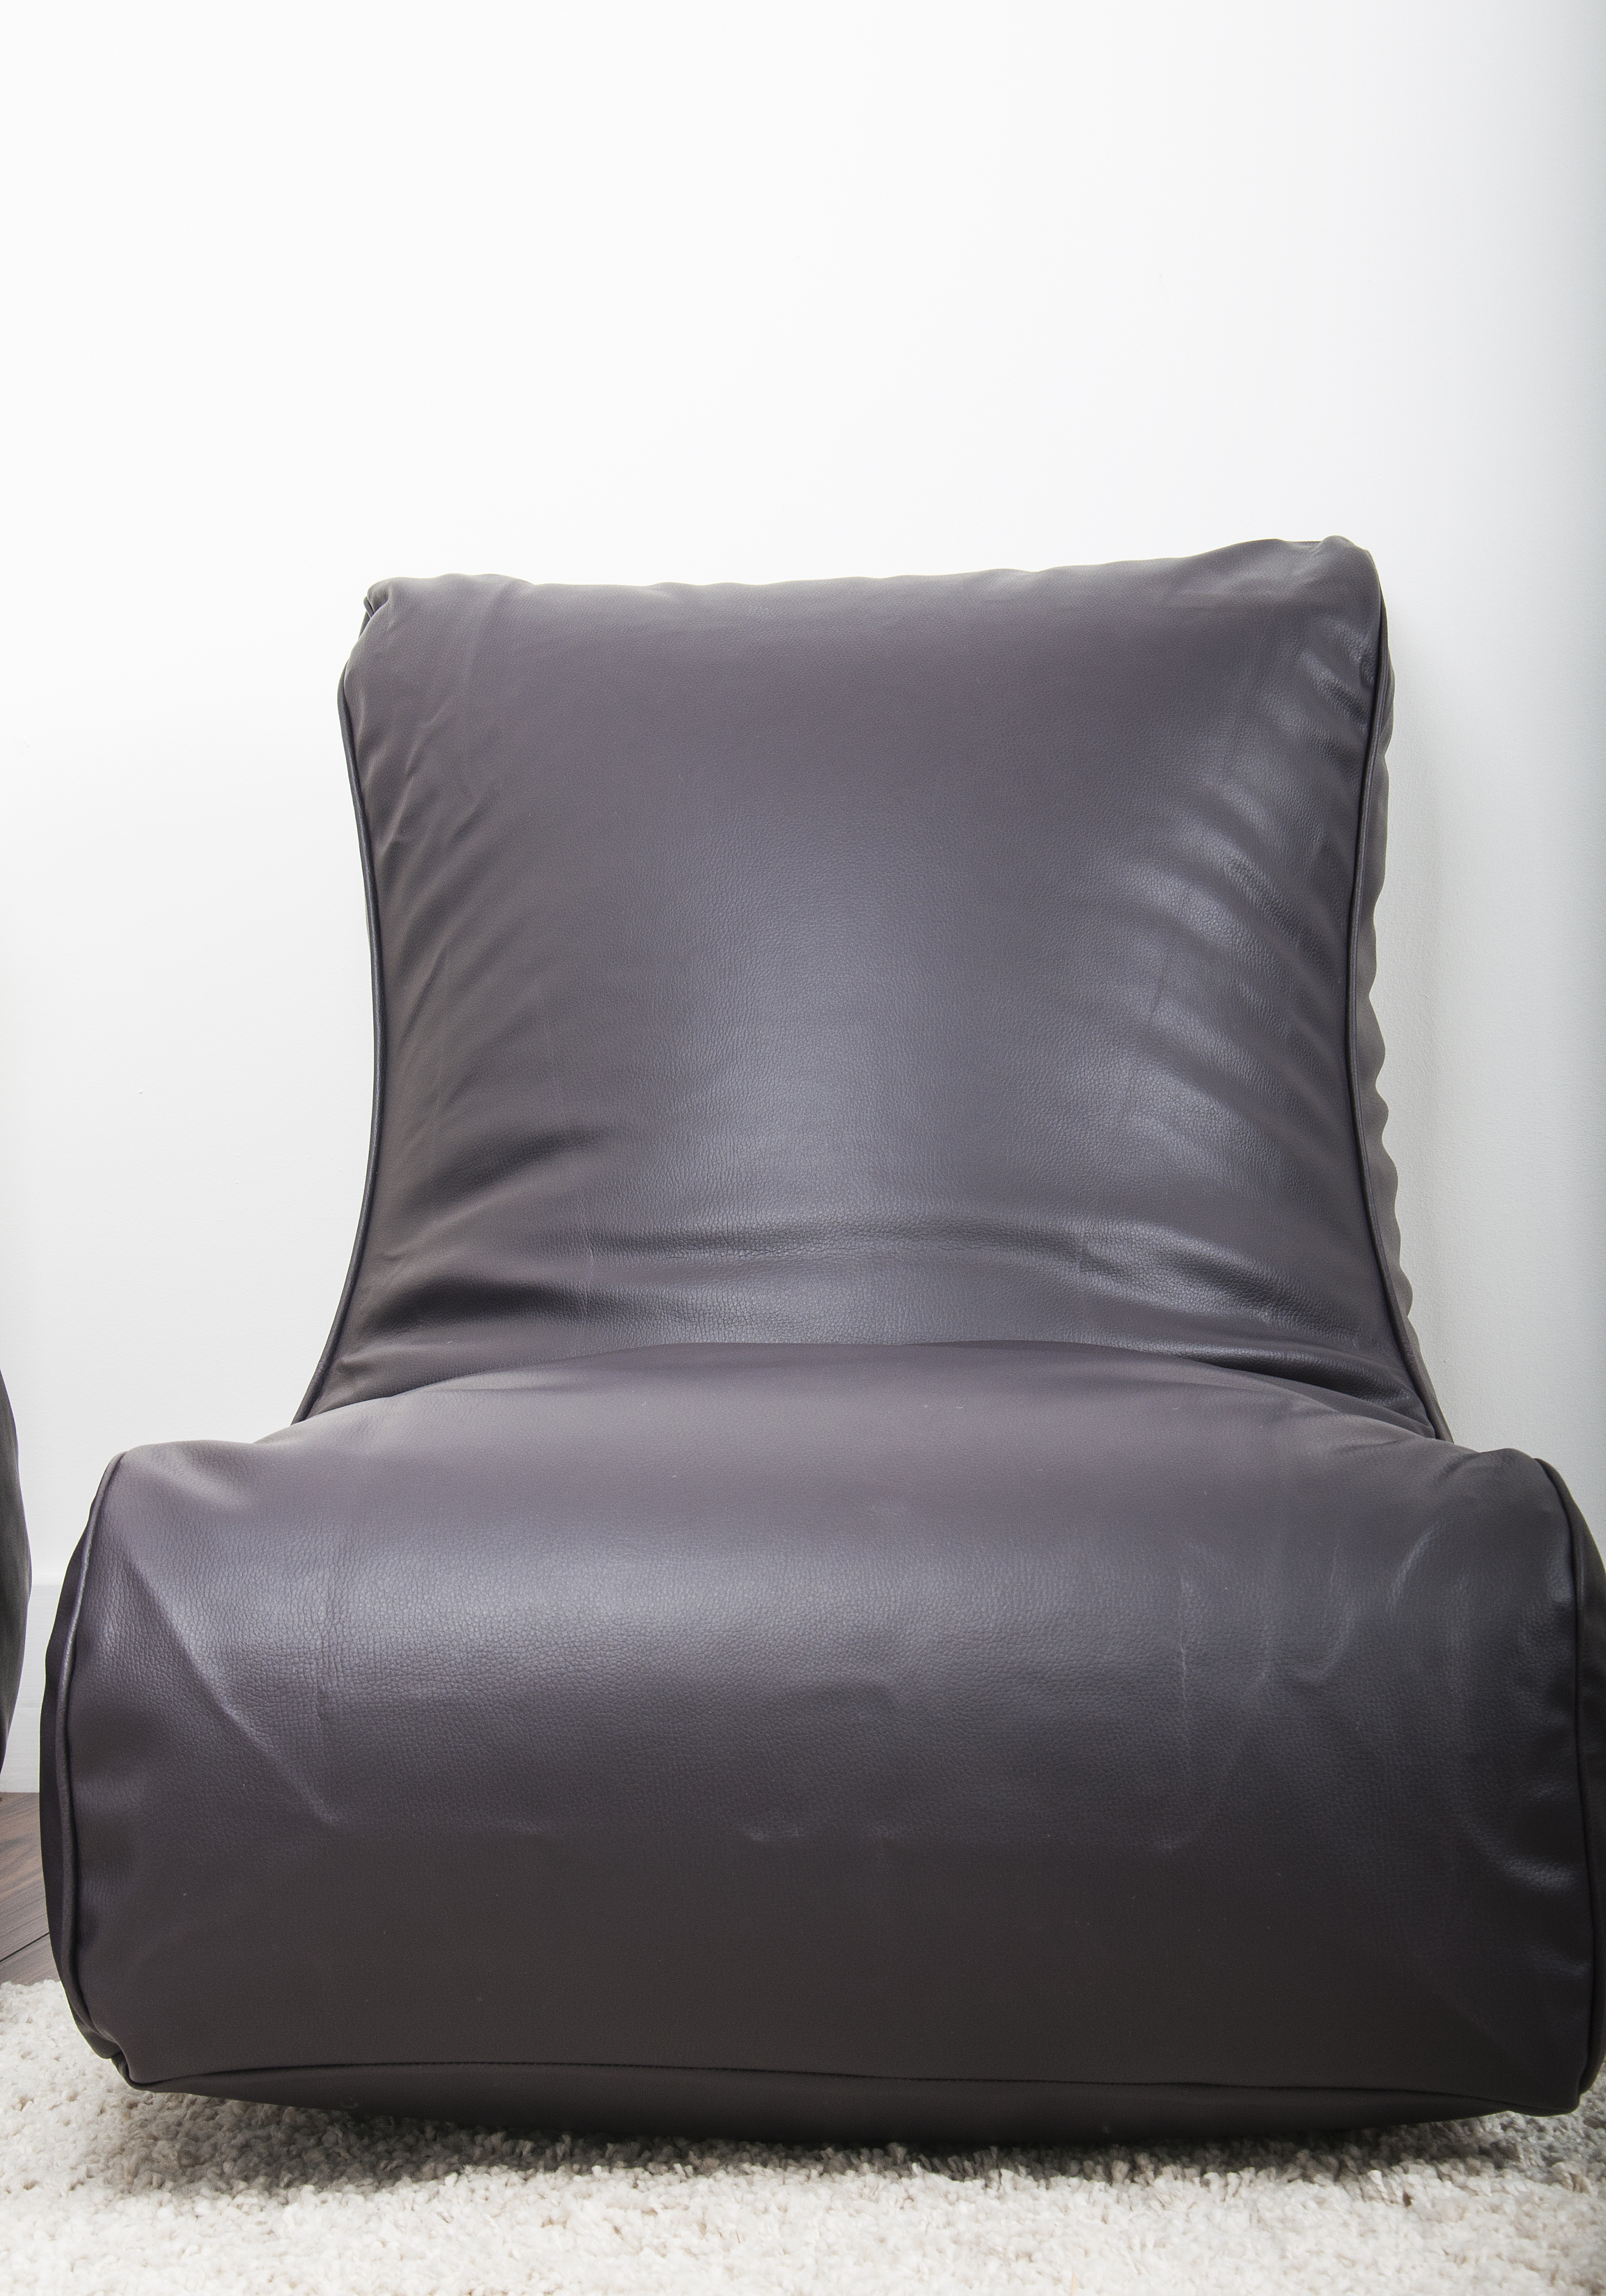 bean bag gaming chair green bistro table and chairs leather look in aubergine